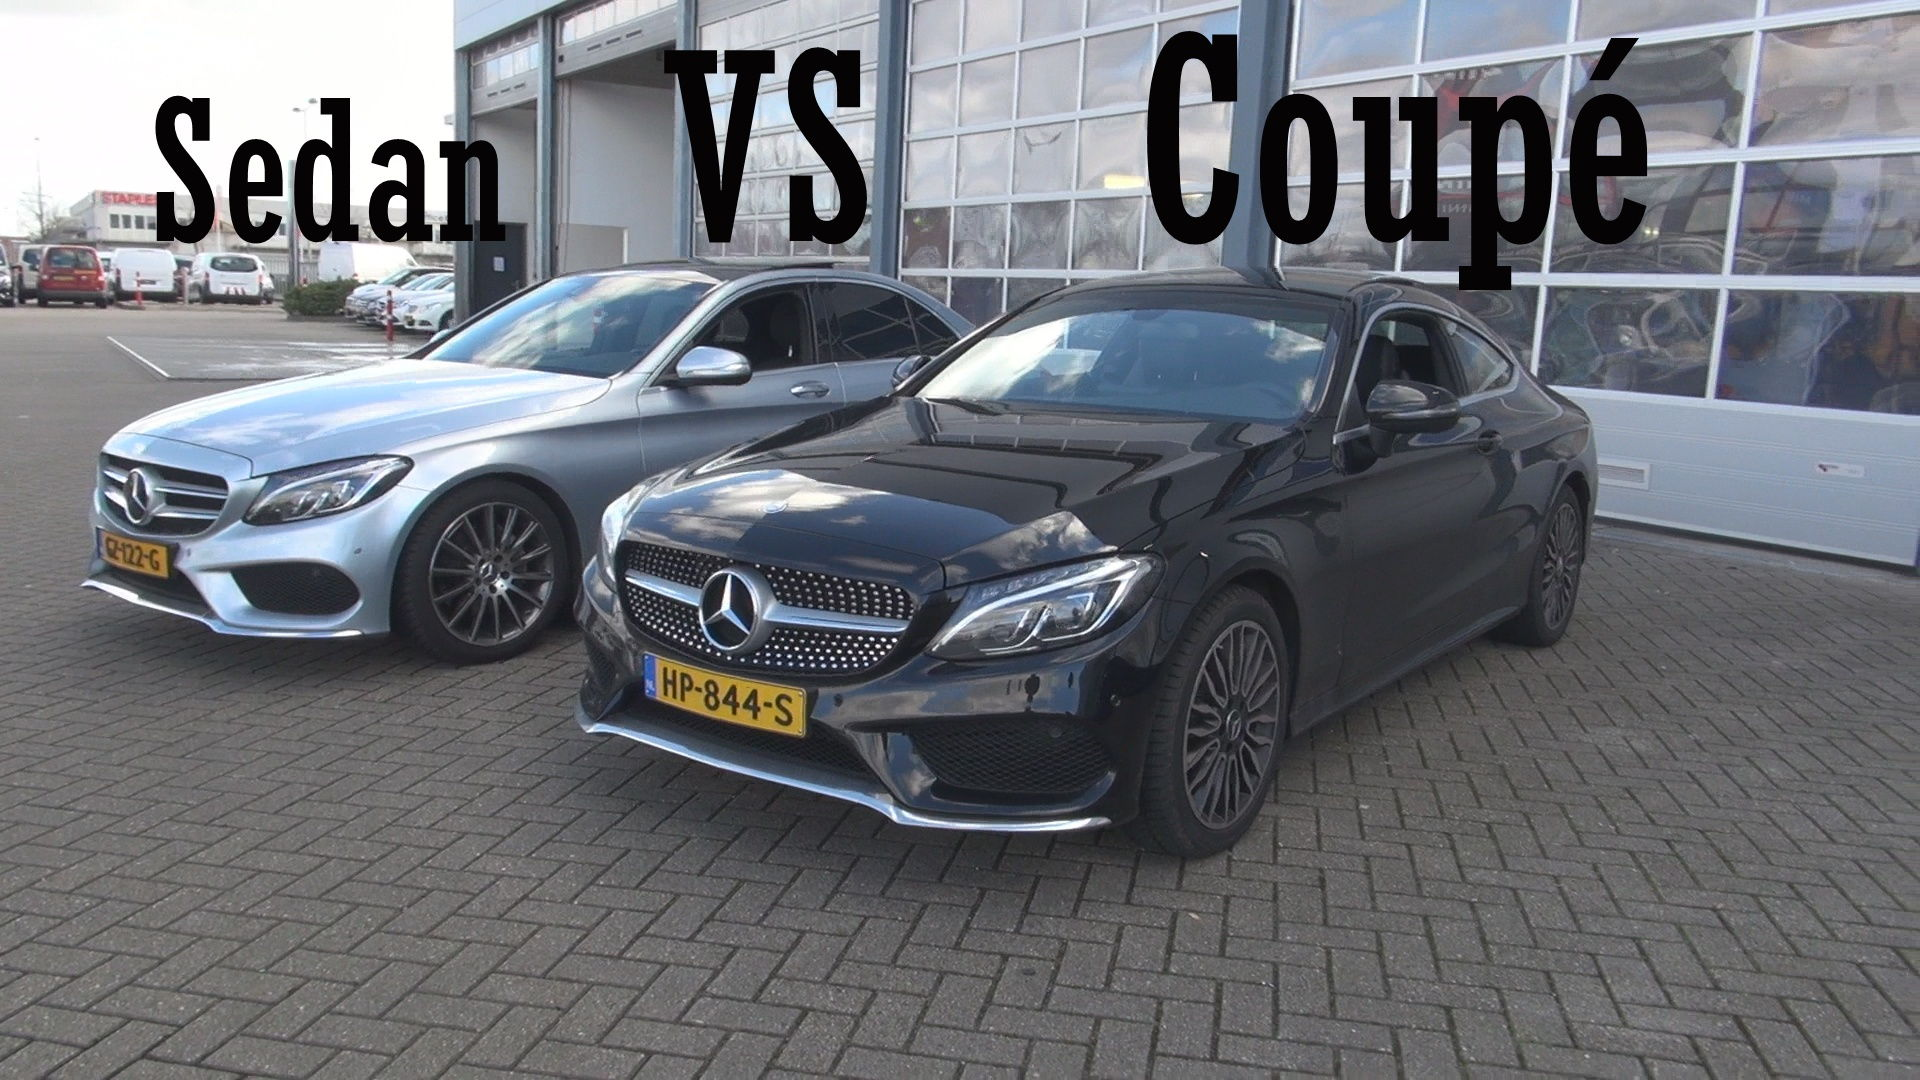 Mercedes amg c63s coupe in selenite grey pics page 7 mbworld org forums